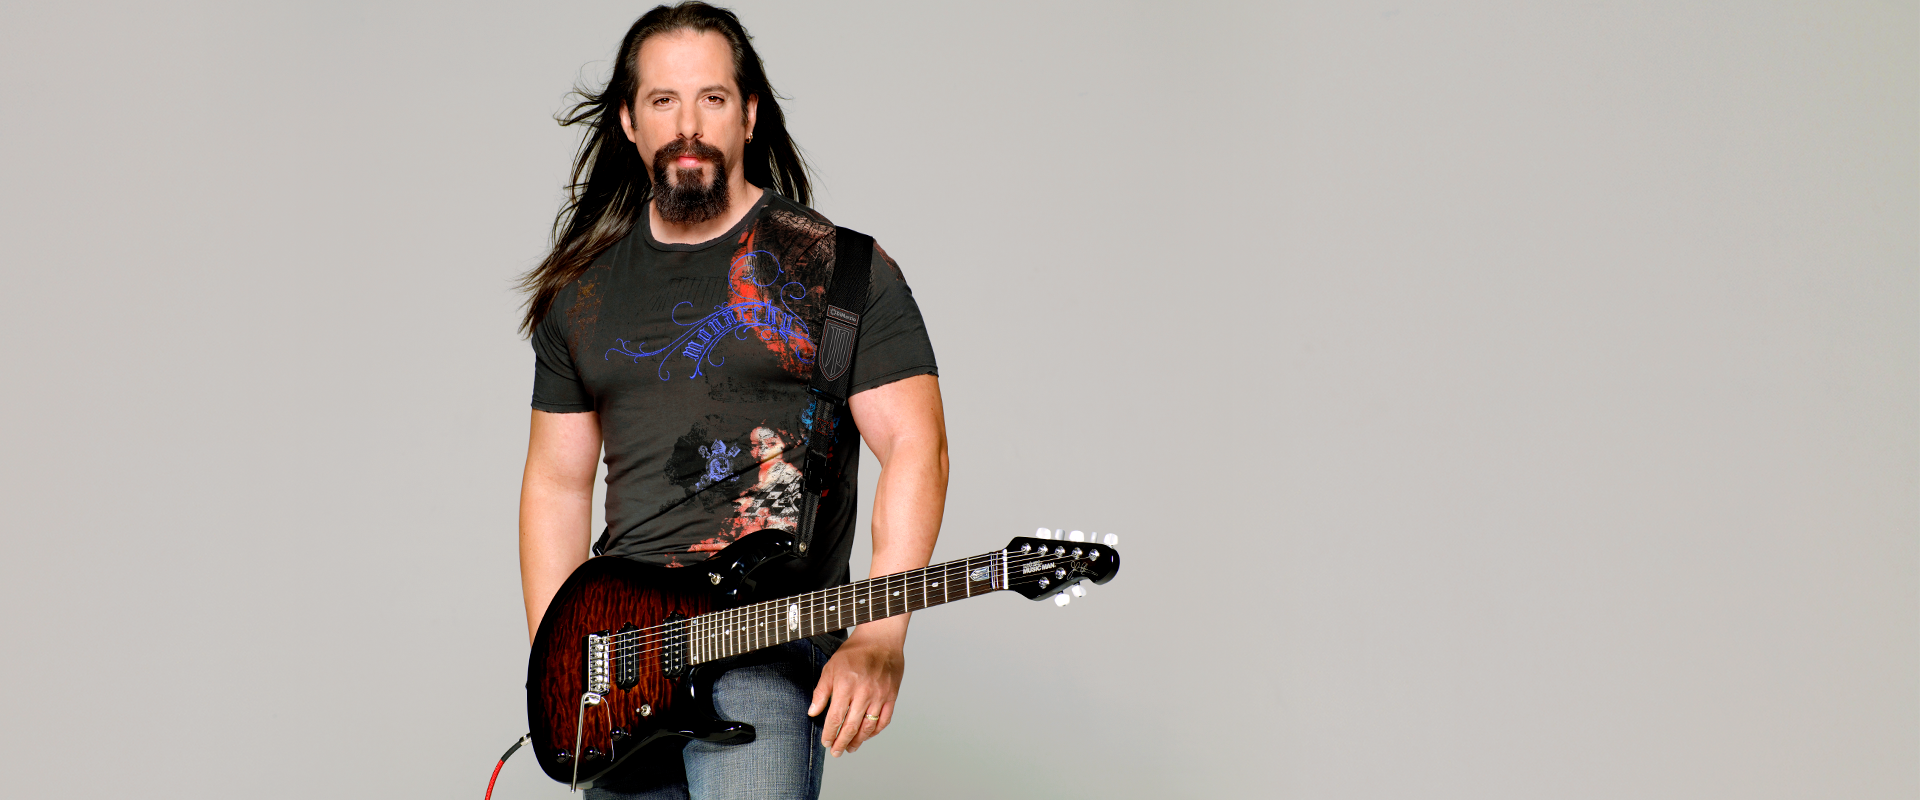 John Petrucci for DiMarzio